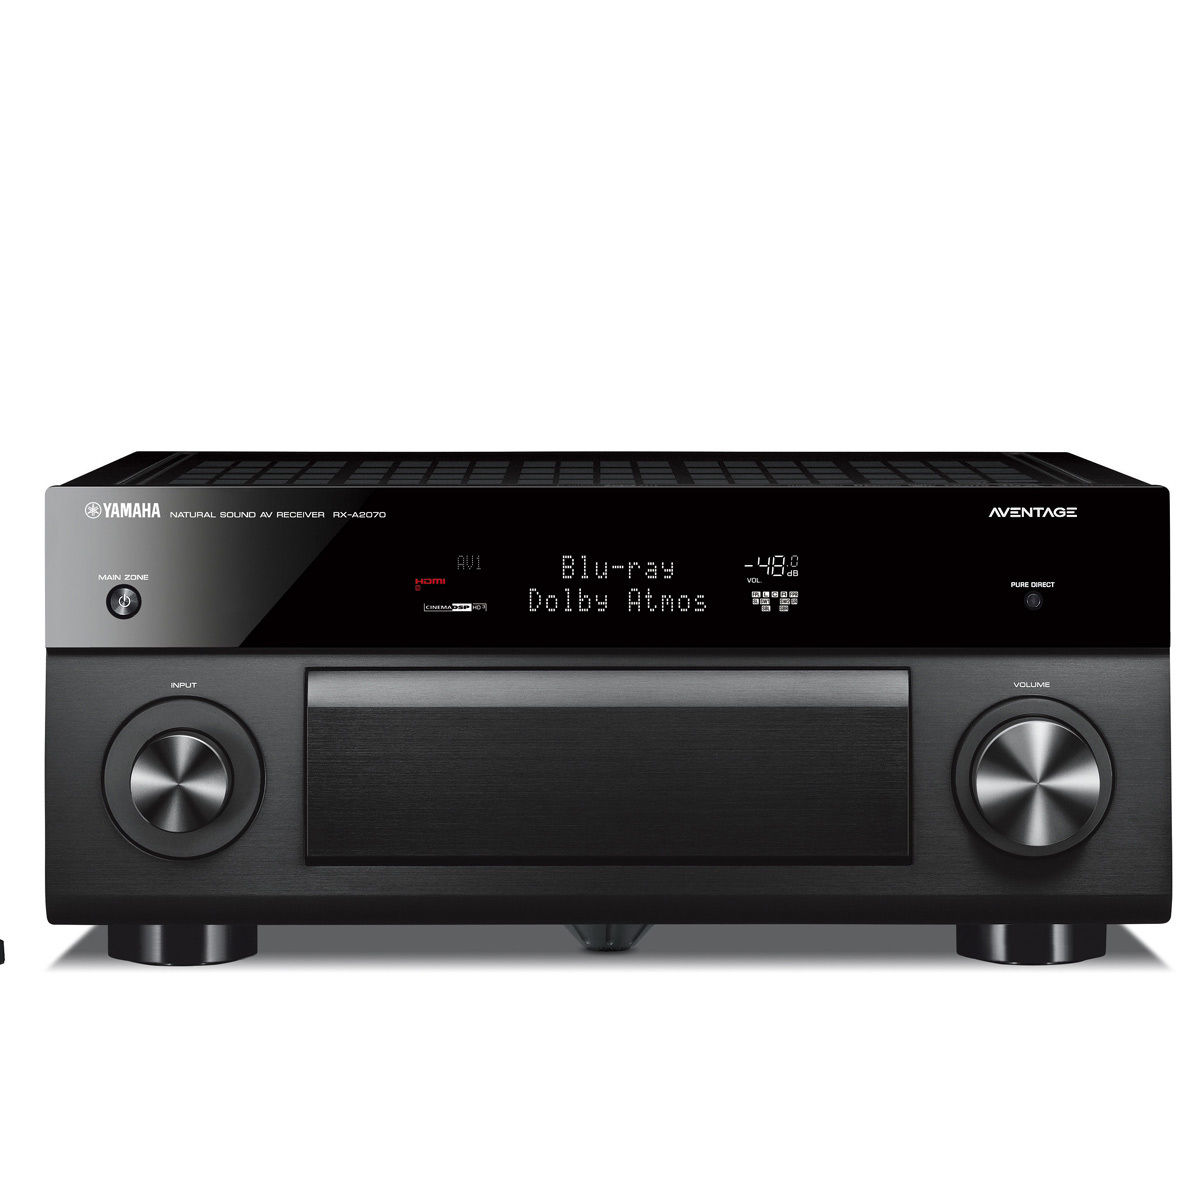 Yamaha RX-A2070 9.2 Channel AVENTAGE Network AV Receiver